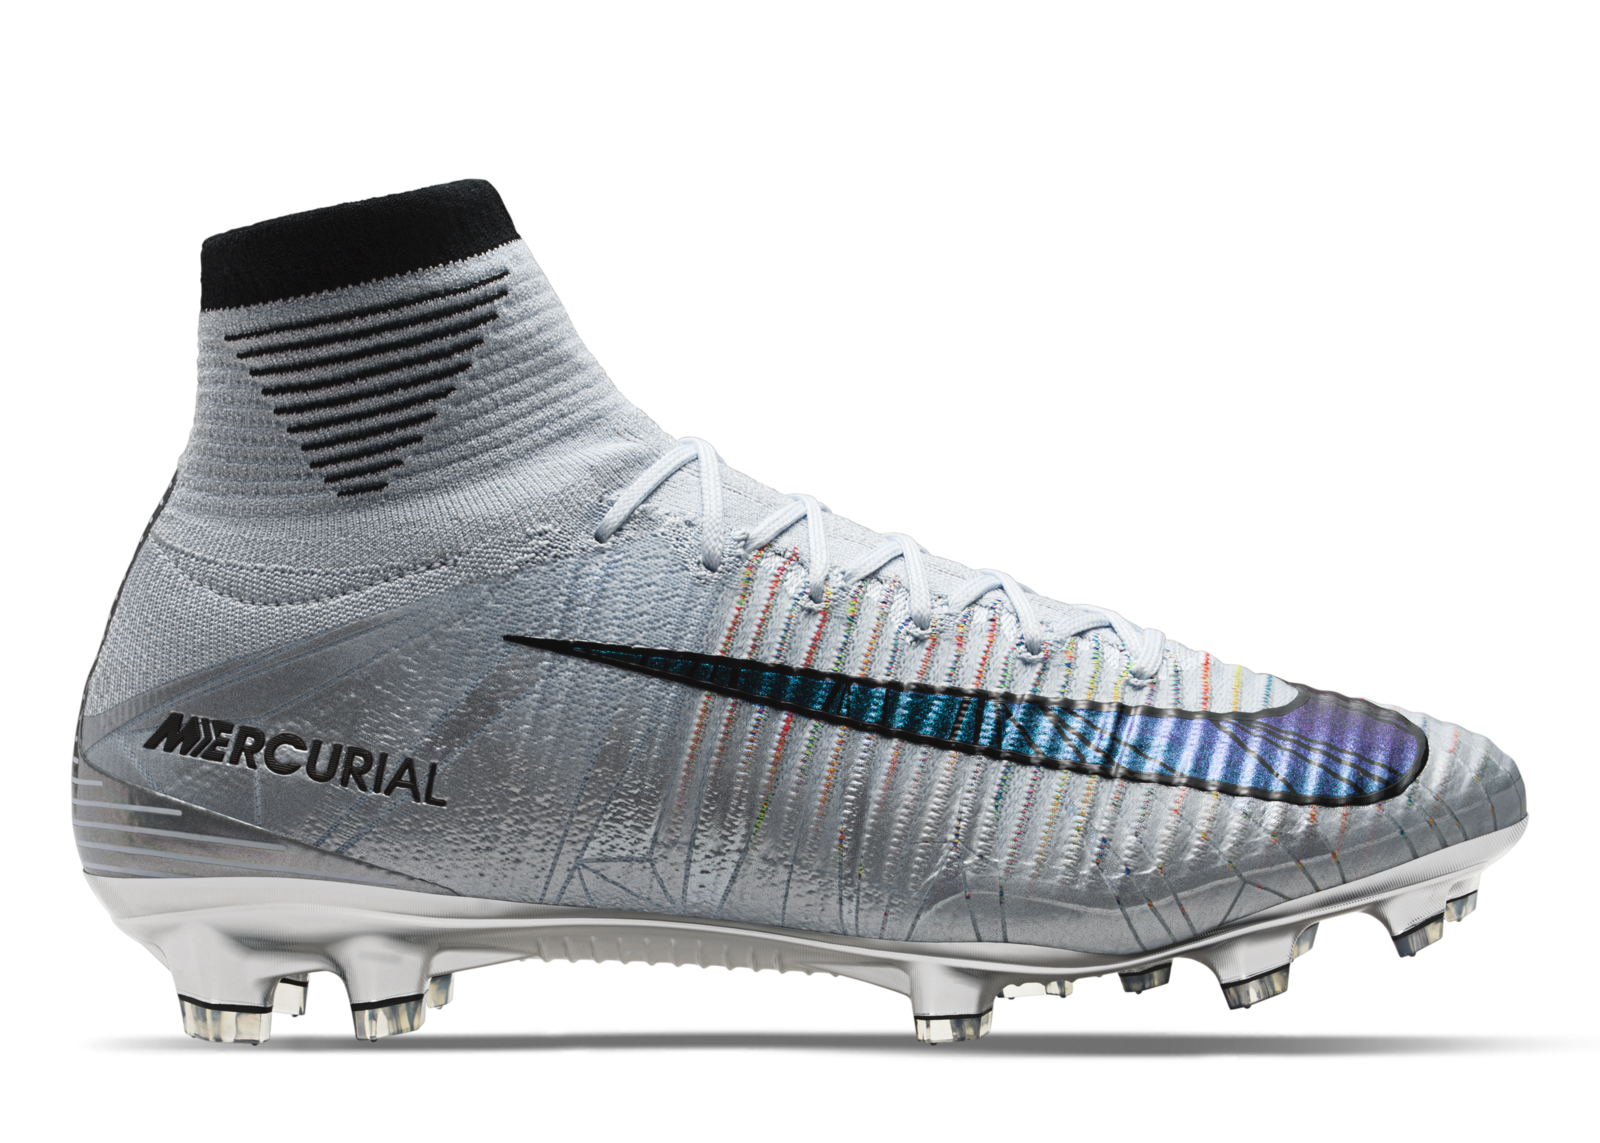 Special Boots for the Best - Nike News